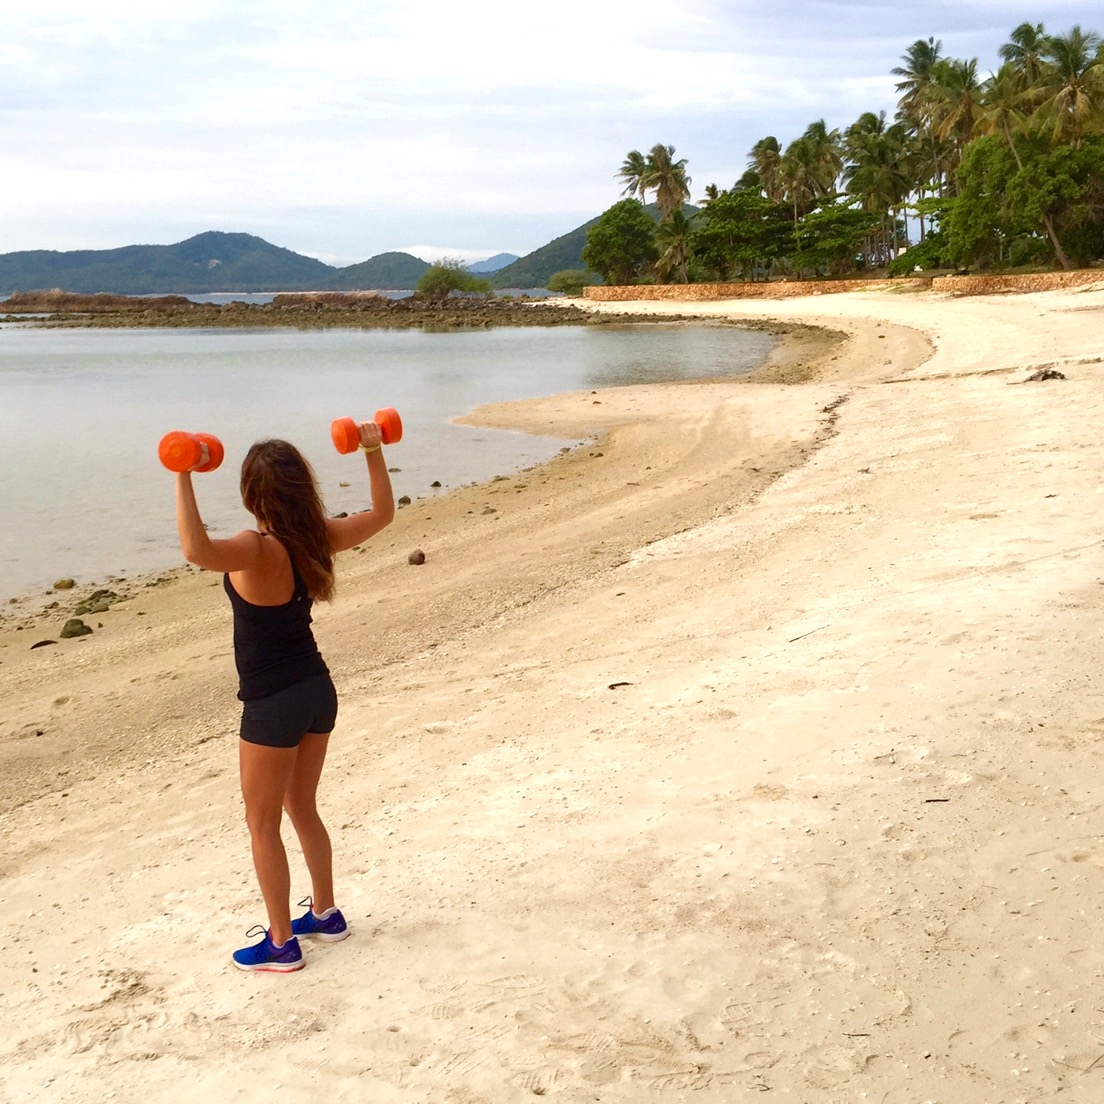 Me, getting my sculpt on before my afternoon Sauv B in Koh Samui, Thailand